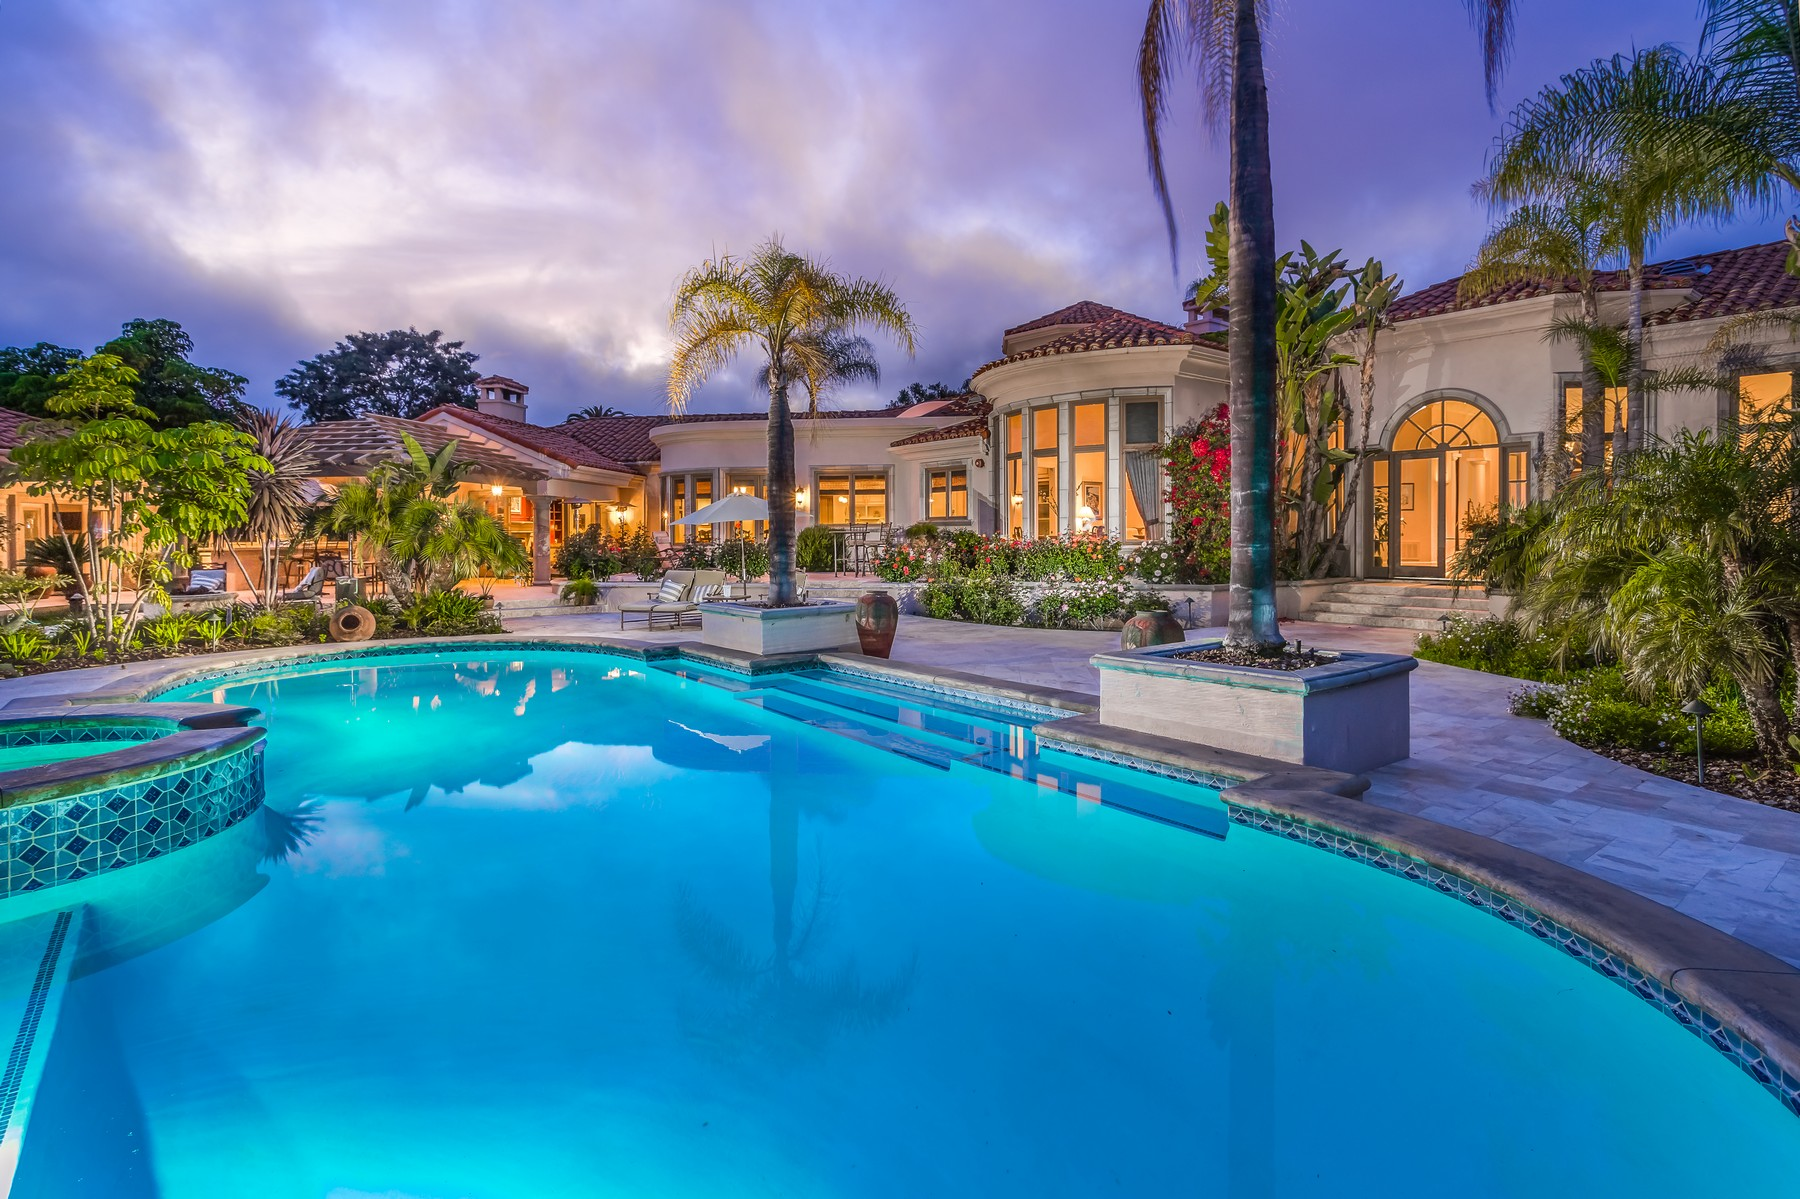 Additional photo for property listing at 6655 Primero Izquierdo  Rancho Santa Fe, California 92067 United States